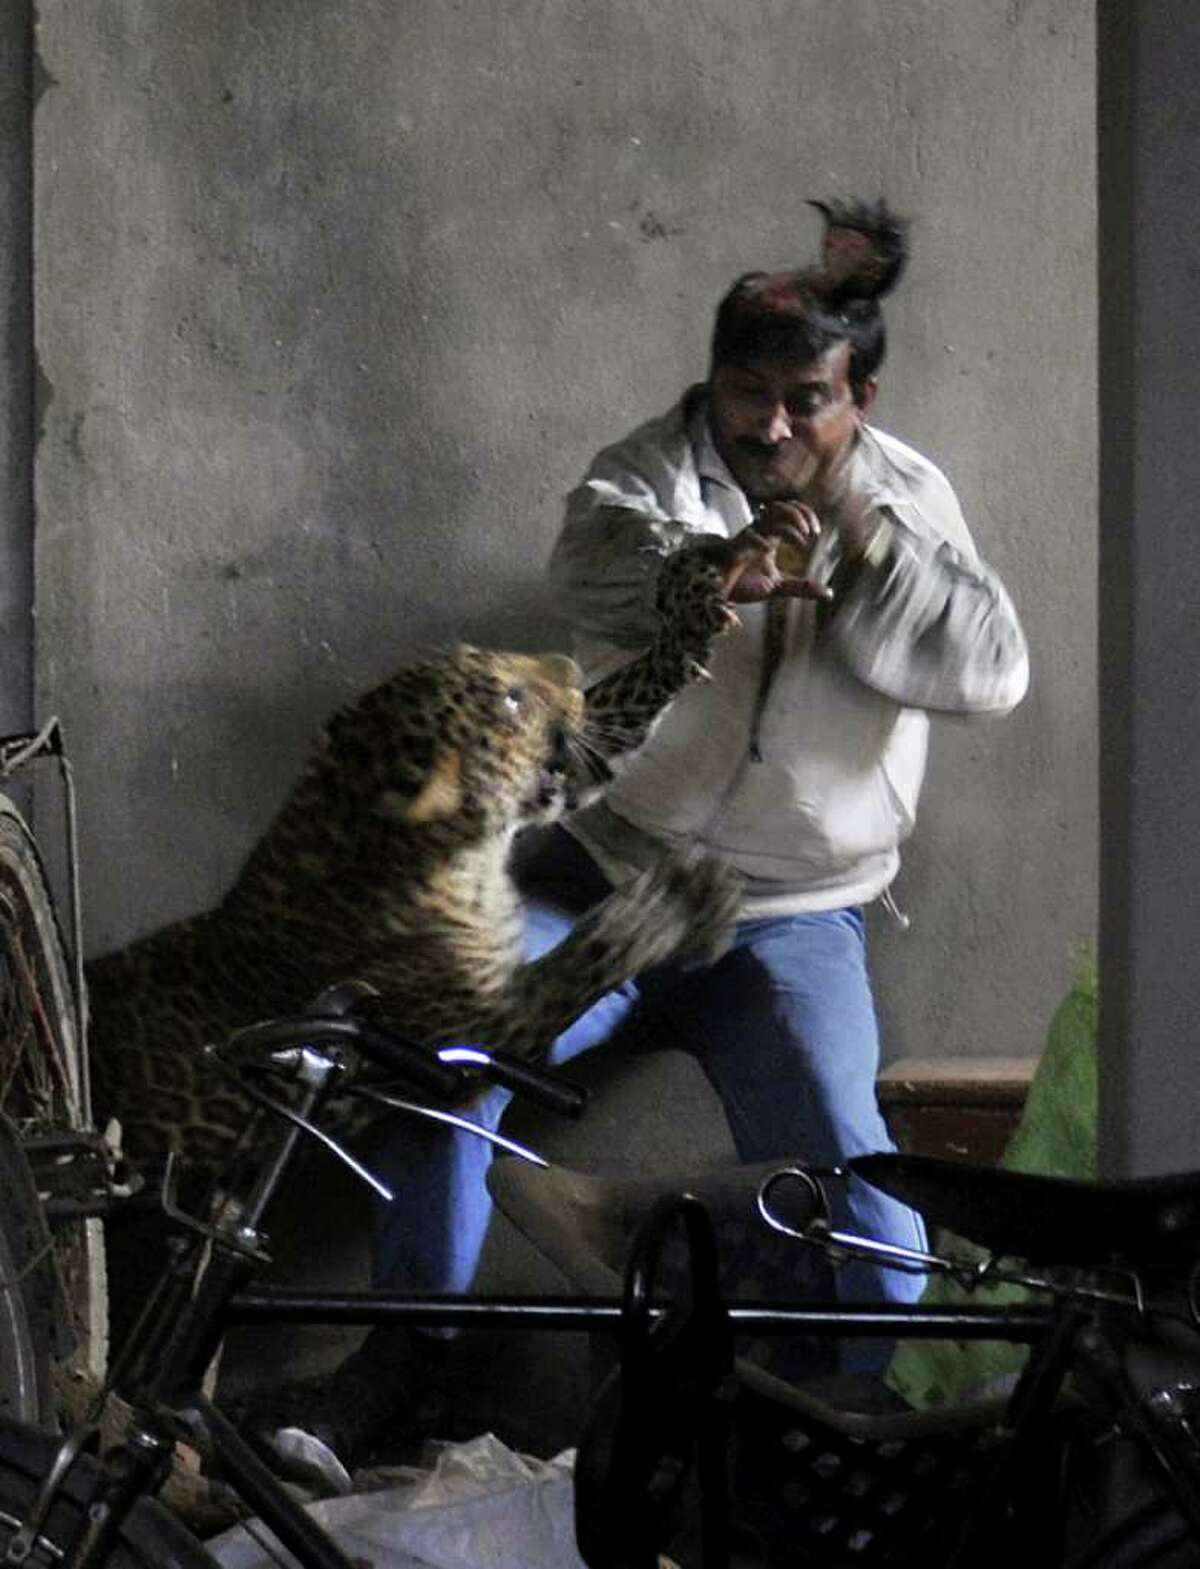 A leopard scalps the head of a man as it attacks after wandering into a residential neighborhood in Gauhati, in the northern state of Assam, India. Later Saturday the leopard was tranquilized by wildlife official and taken to the state zoological park. The leopard ventured into a crowded area and injured four people before it was captured and caged, local reports said. (AP Photo/Manas Paran, The Sunday Indian)